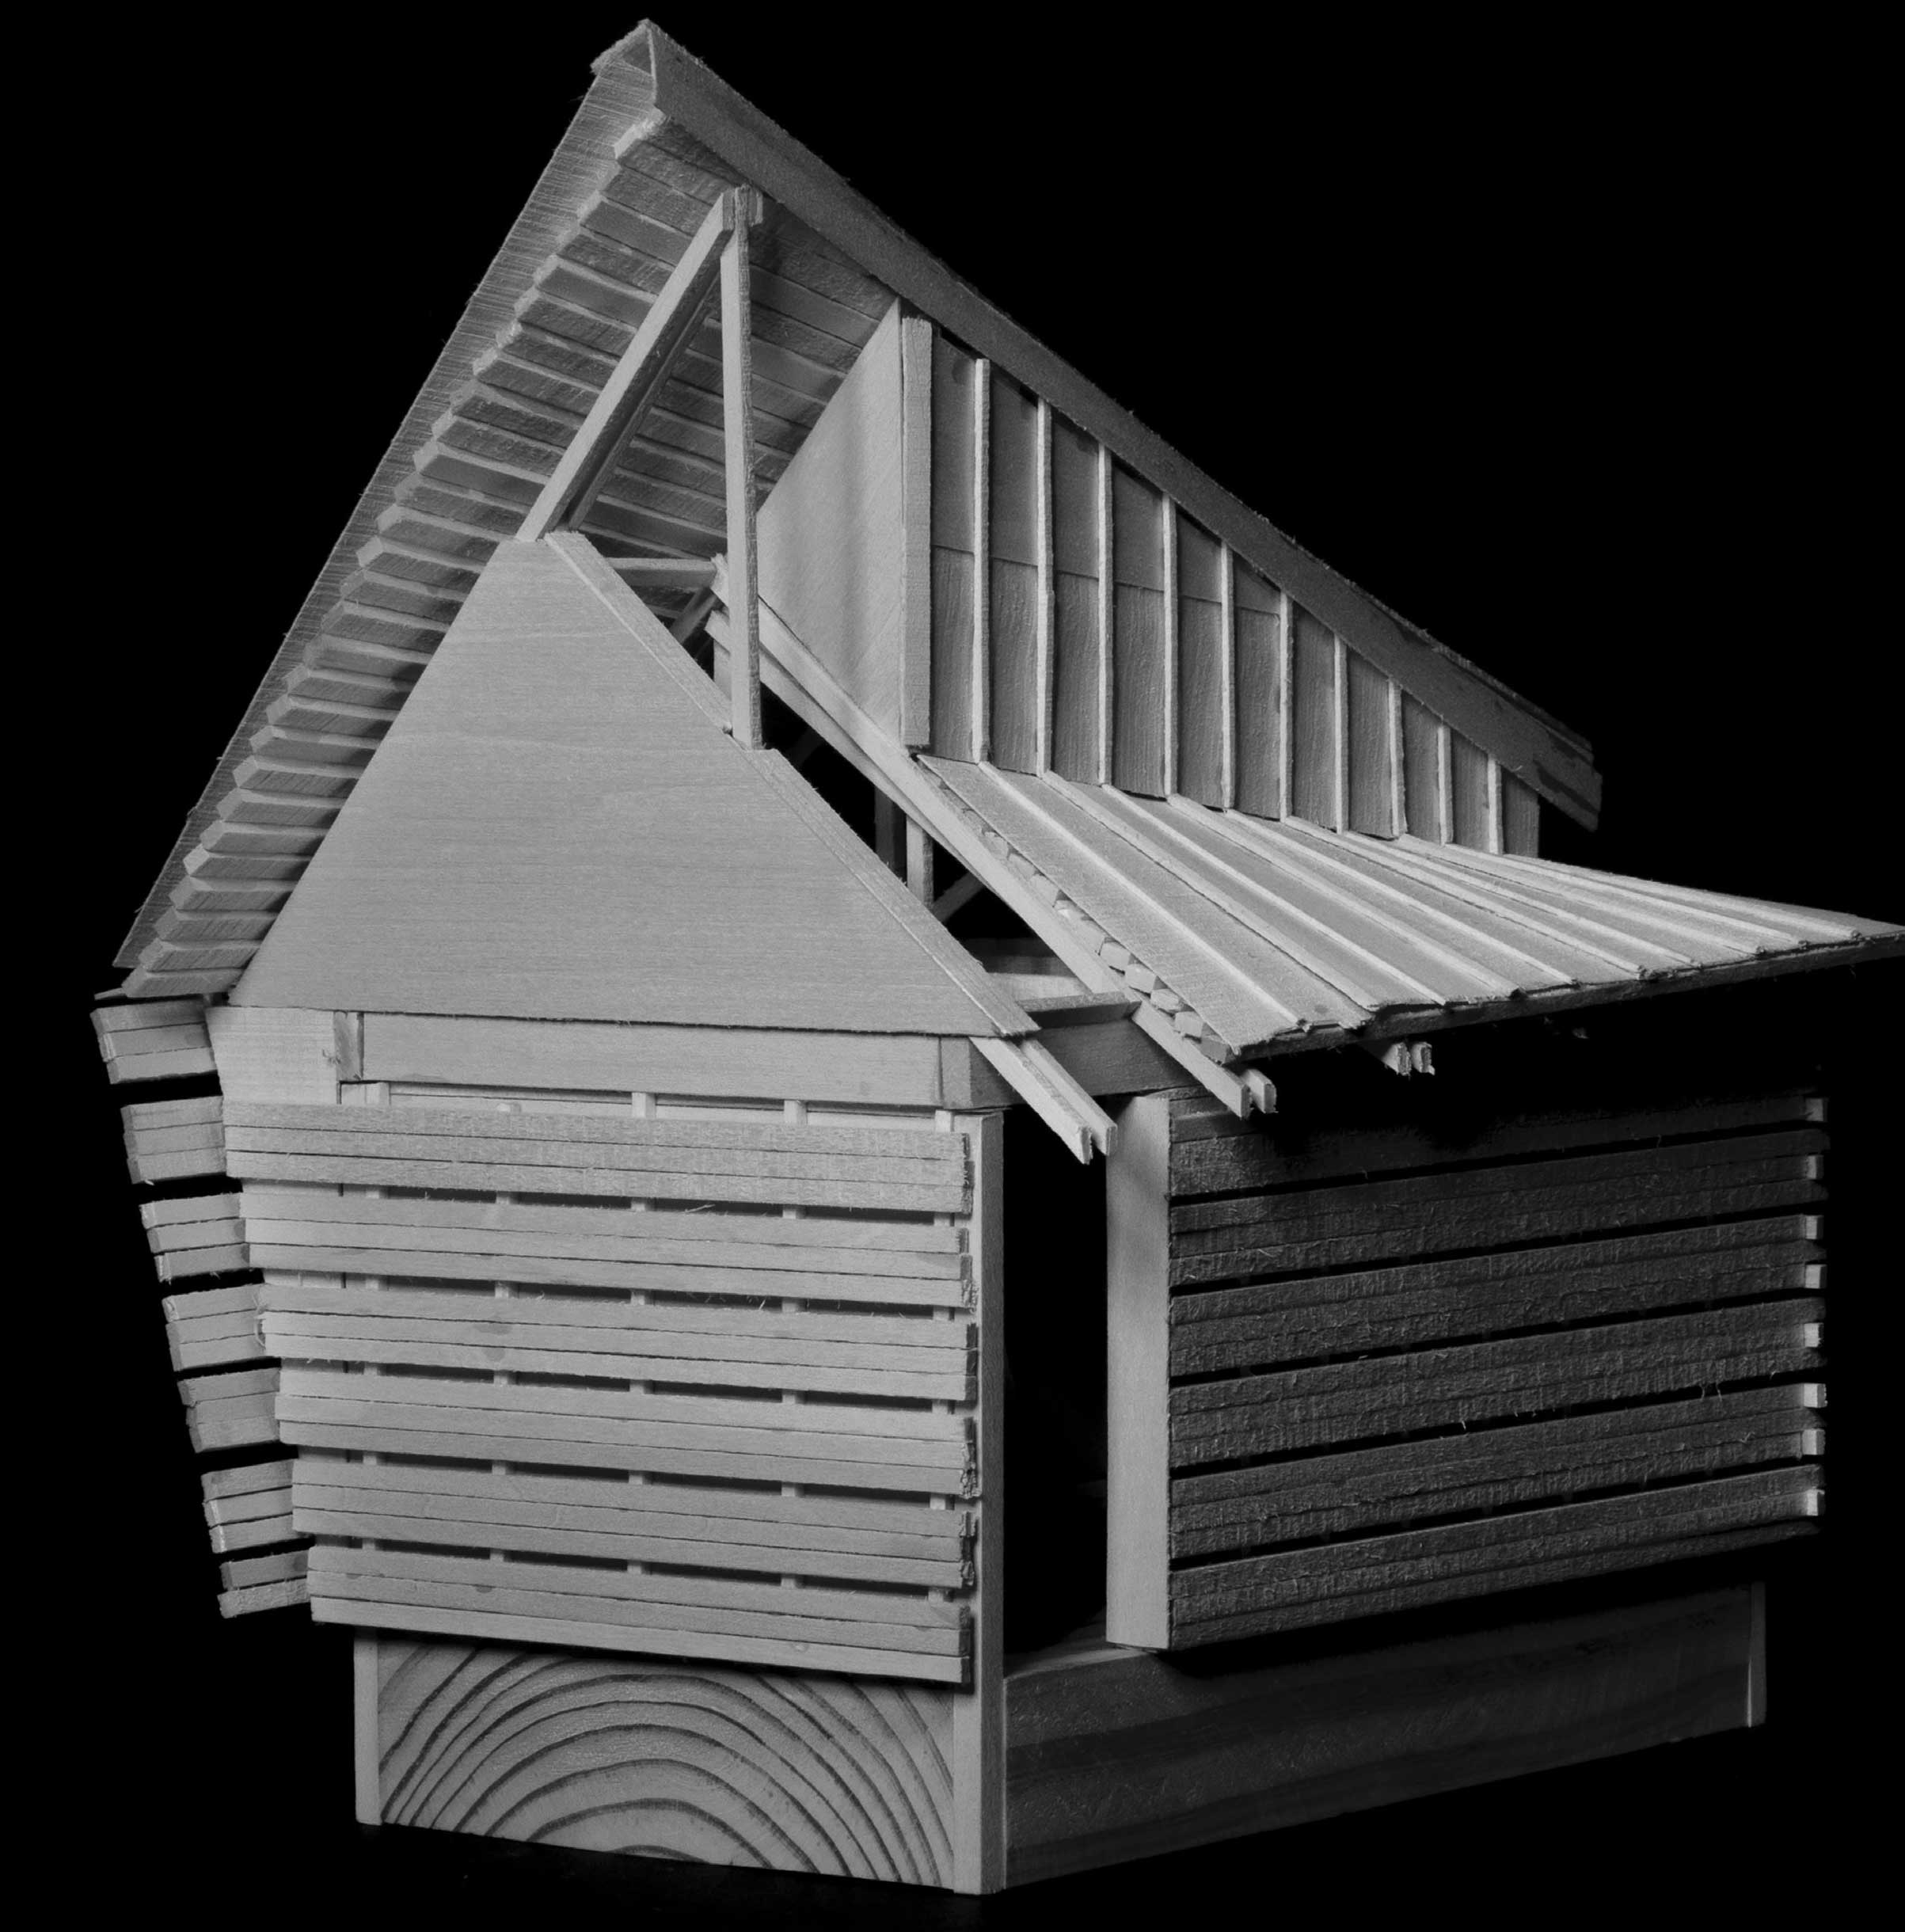 Davis Byars: Convertible Cabin, final model, basswood. Black and white image of a model of a cabin made of basswood